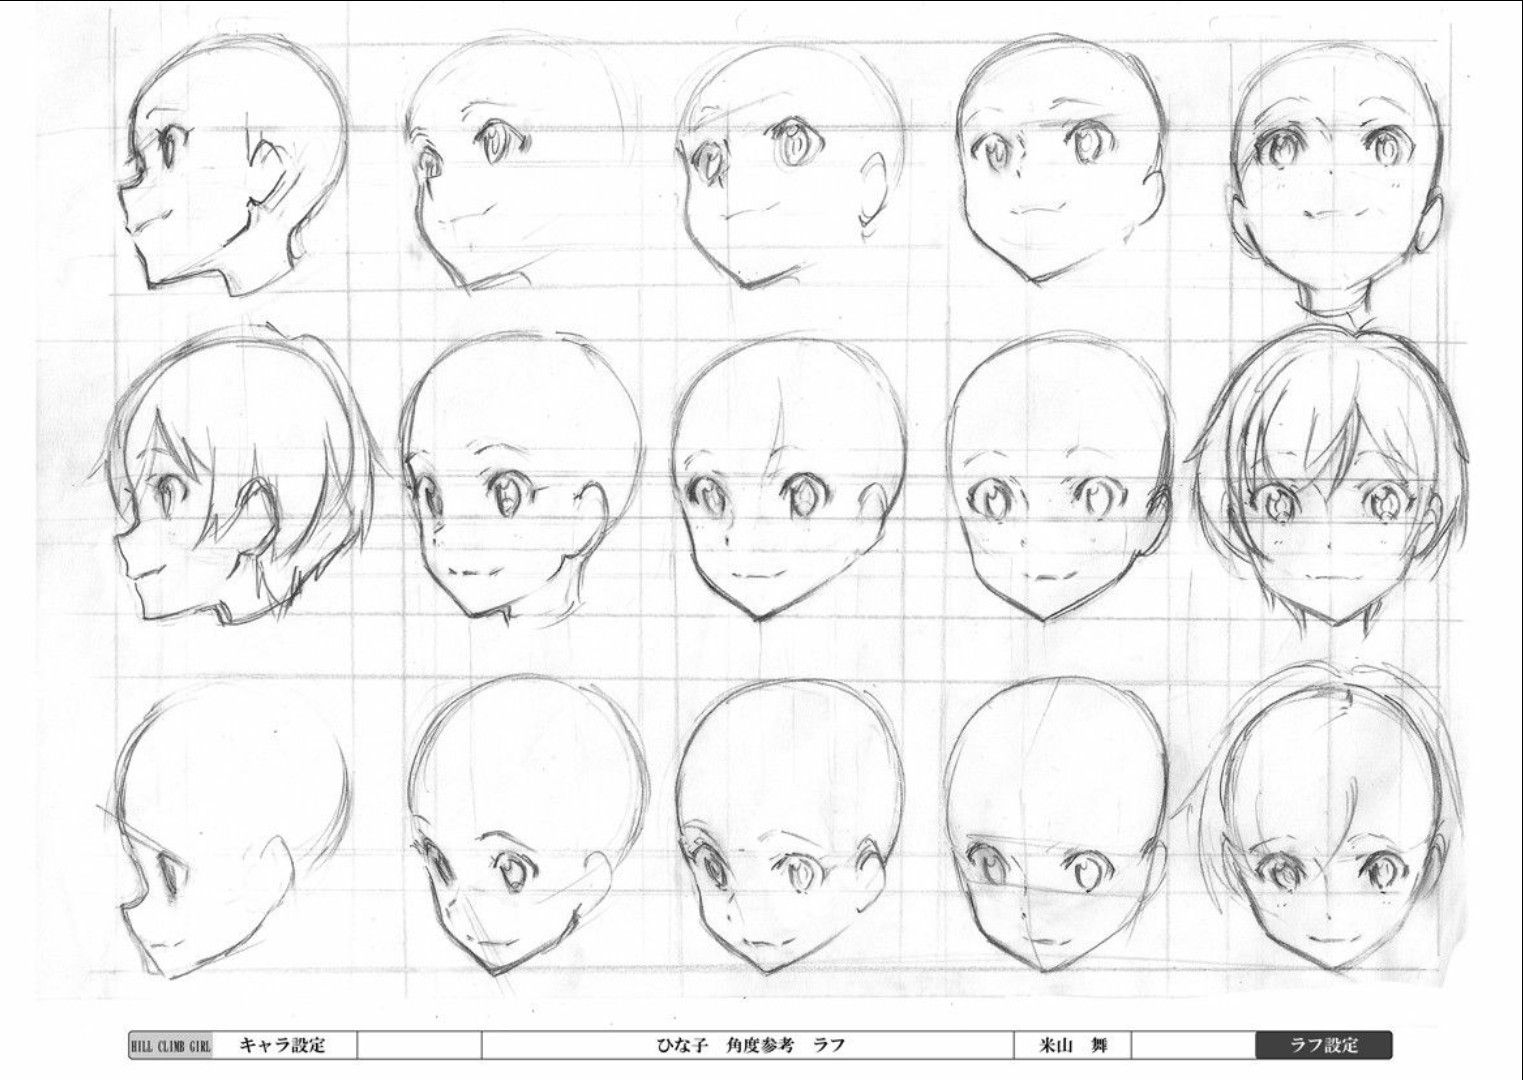 Pin By Chloe On Drawing Anime Face Drawing Anime Head Sketches